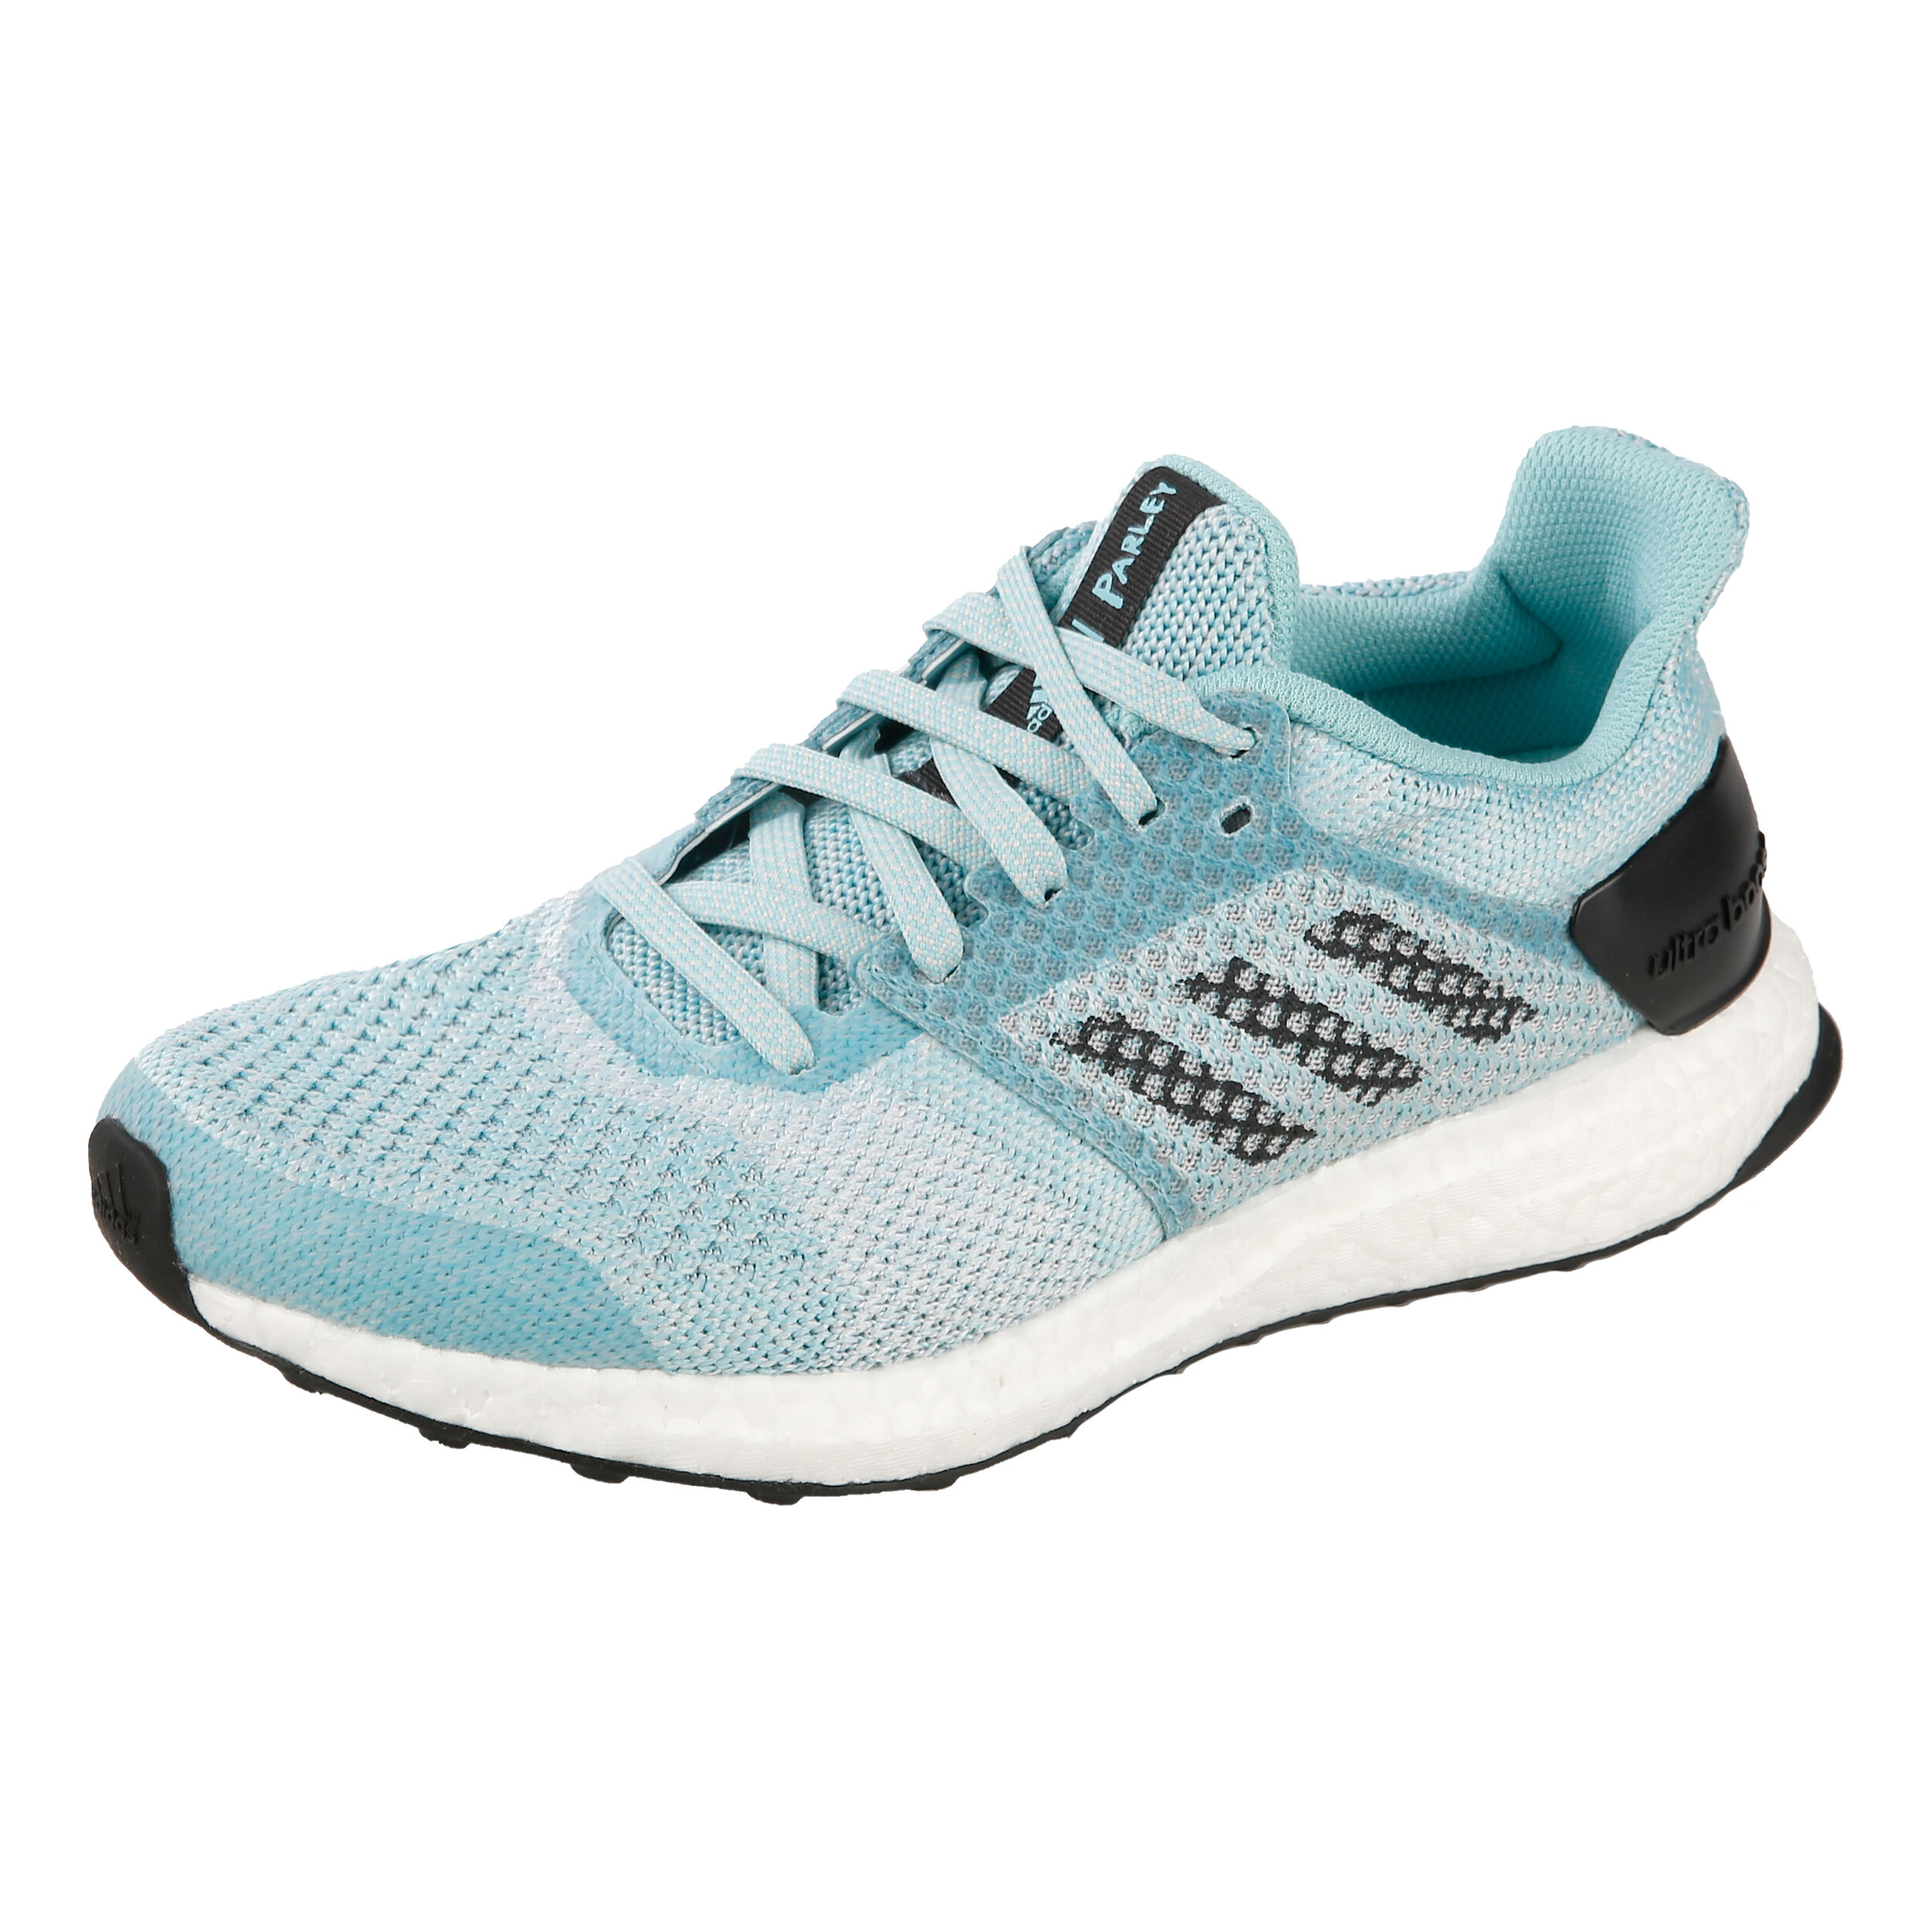 Adidas UltraBoost ST Parley Womens Running Shoes